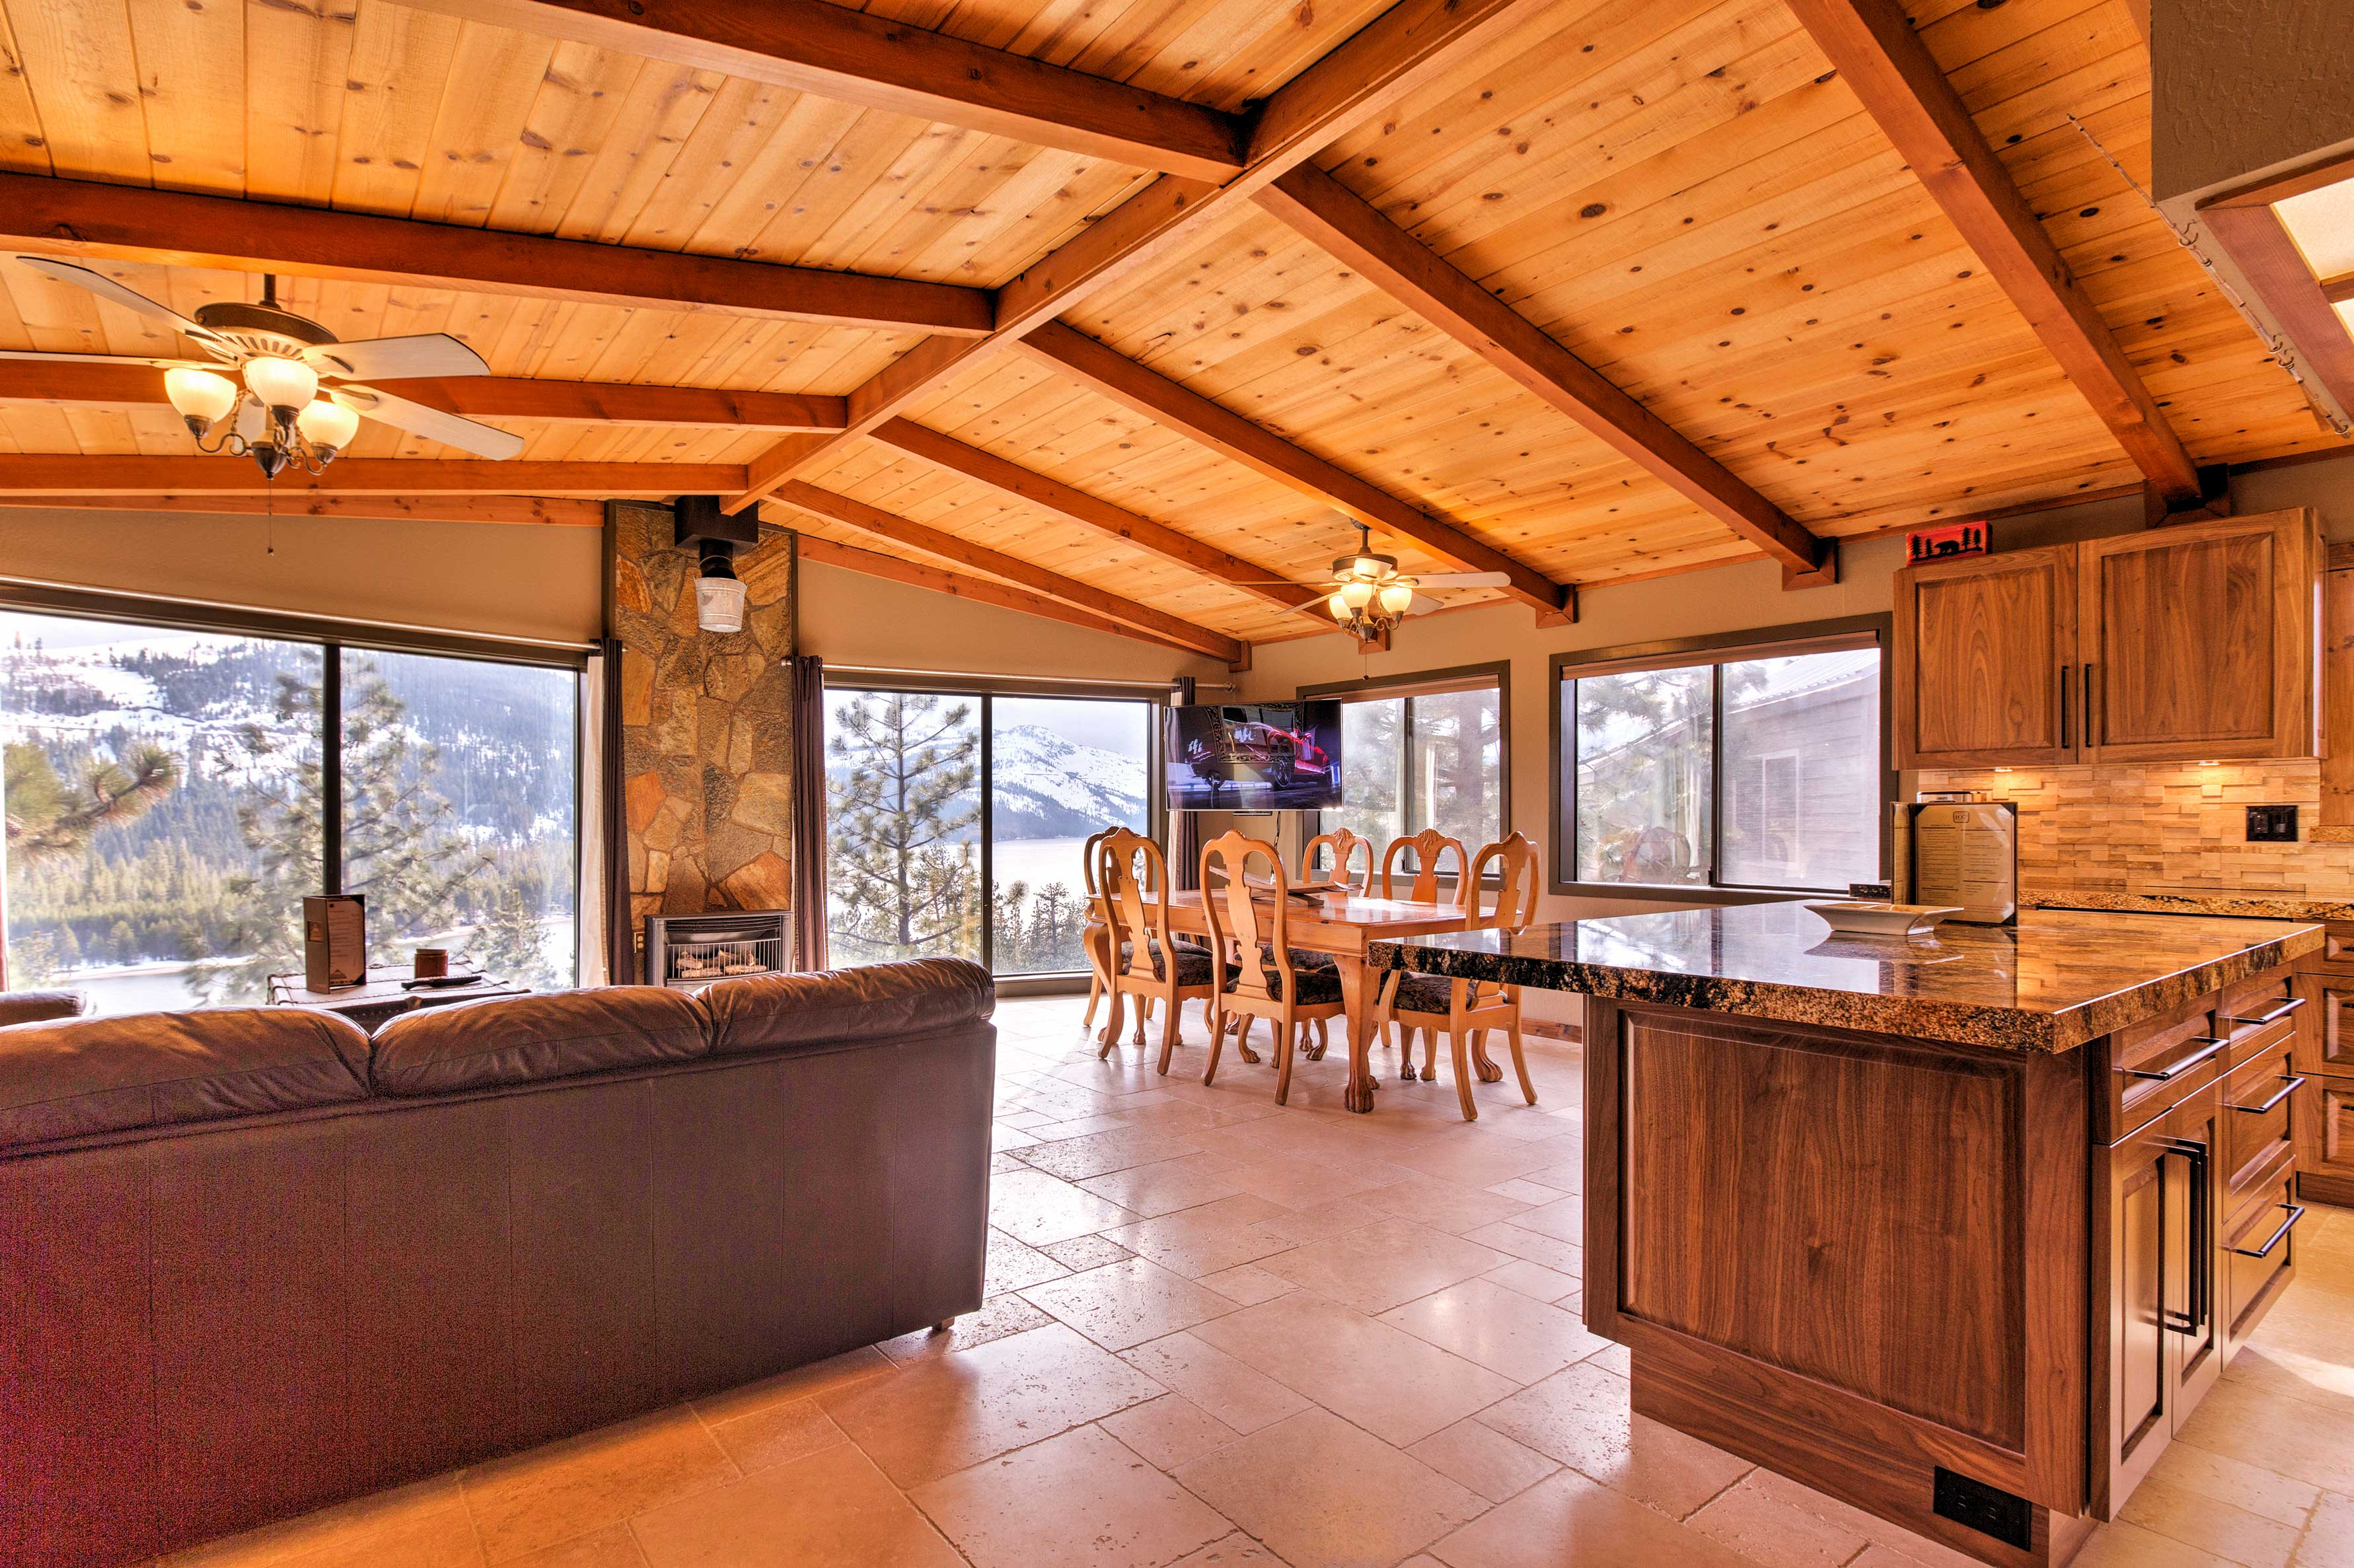 Large windows provide stunning views throughout the open floor plan.